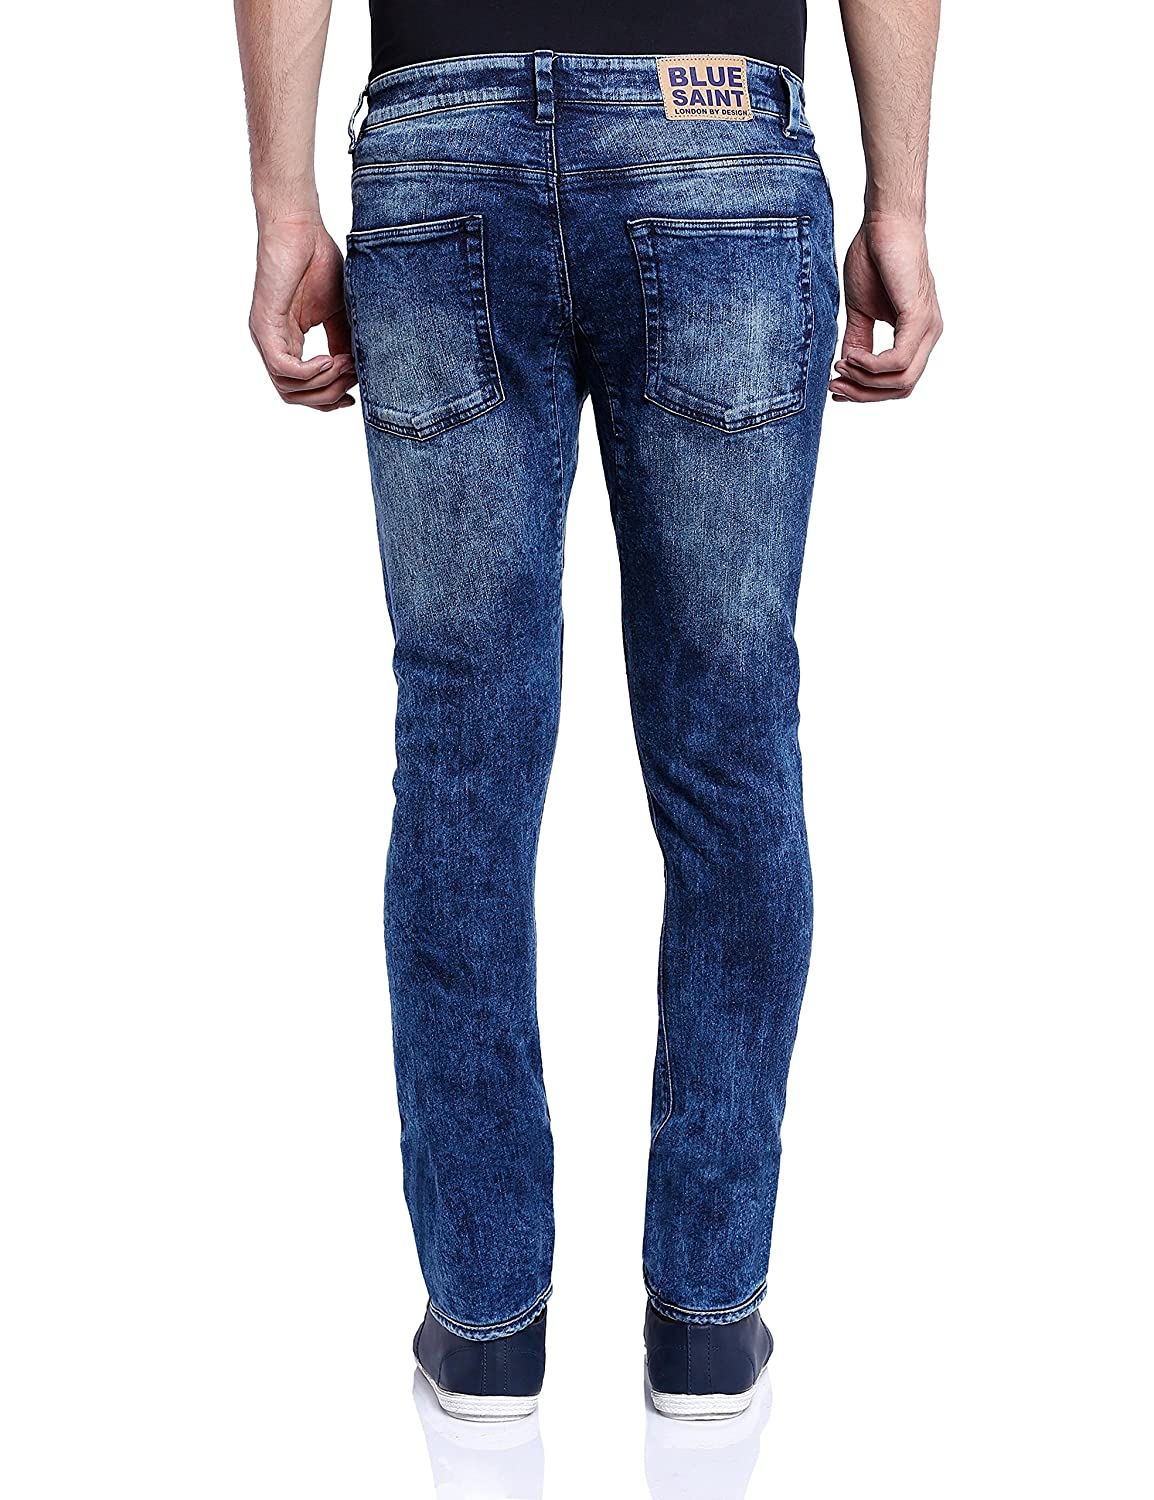 39f328930f Blue Saint Men s Blueberry Slim Fit Jeans  Amazon.in  Clothing   Accessories